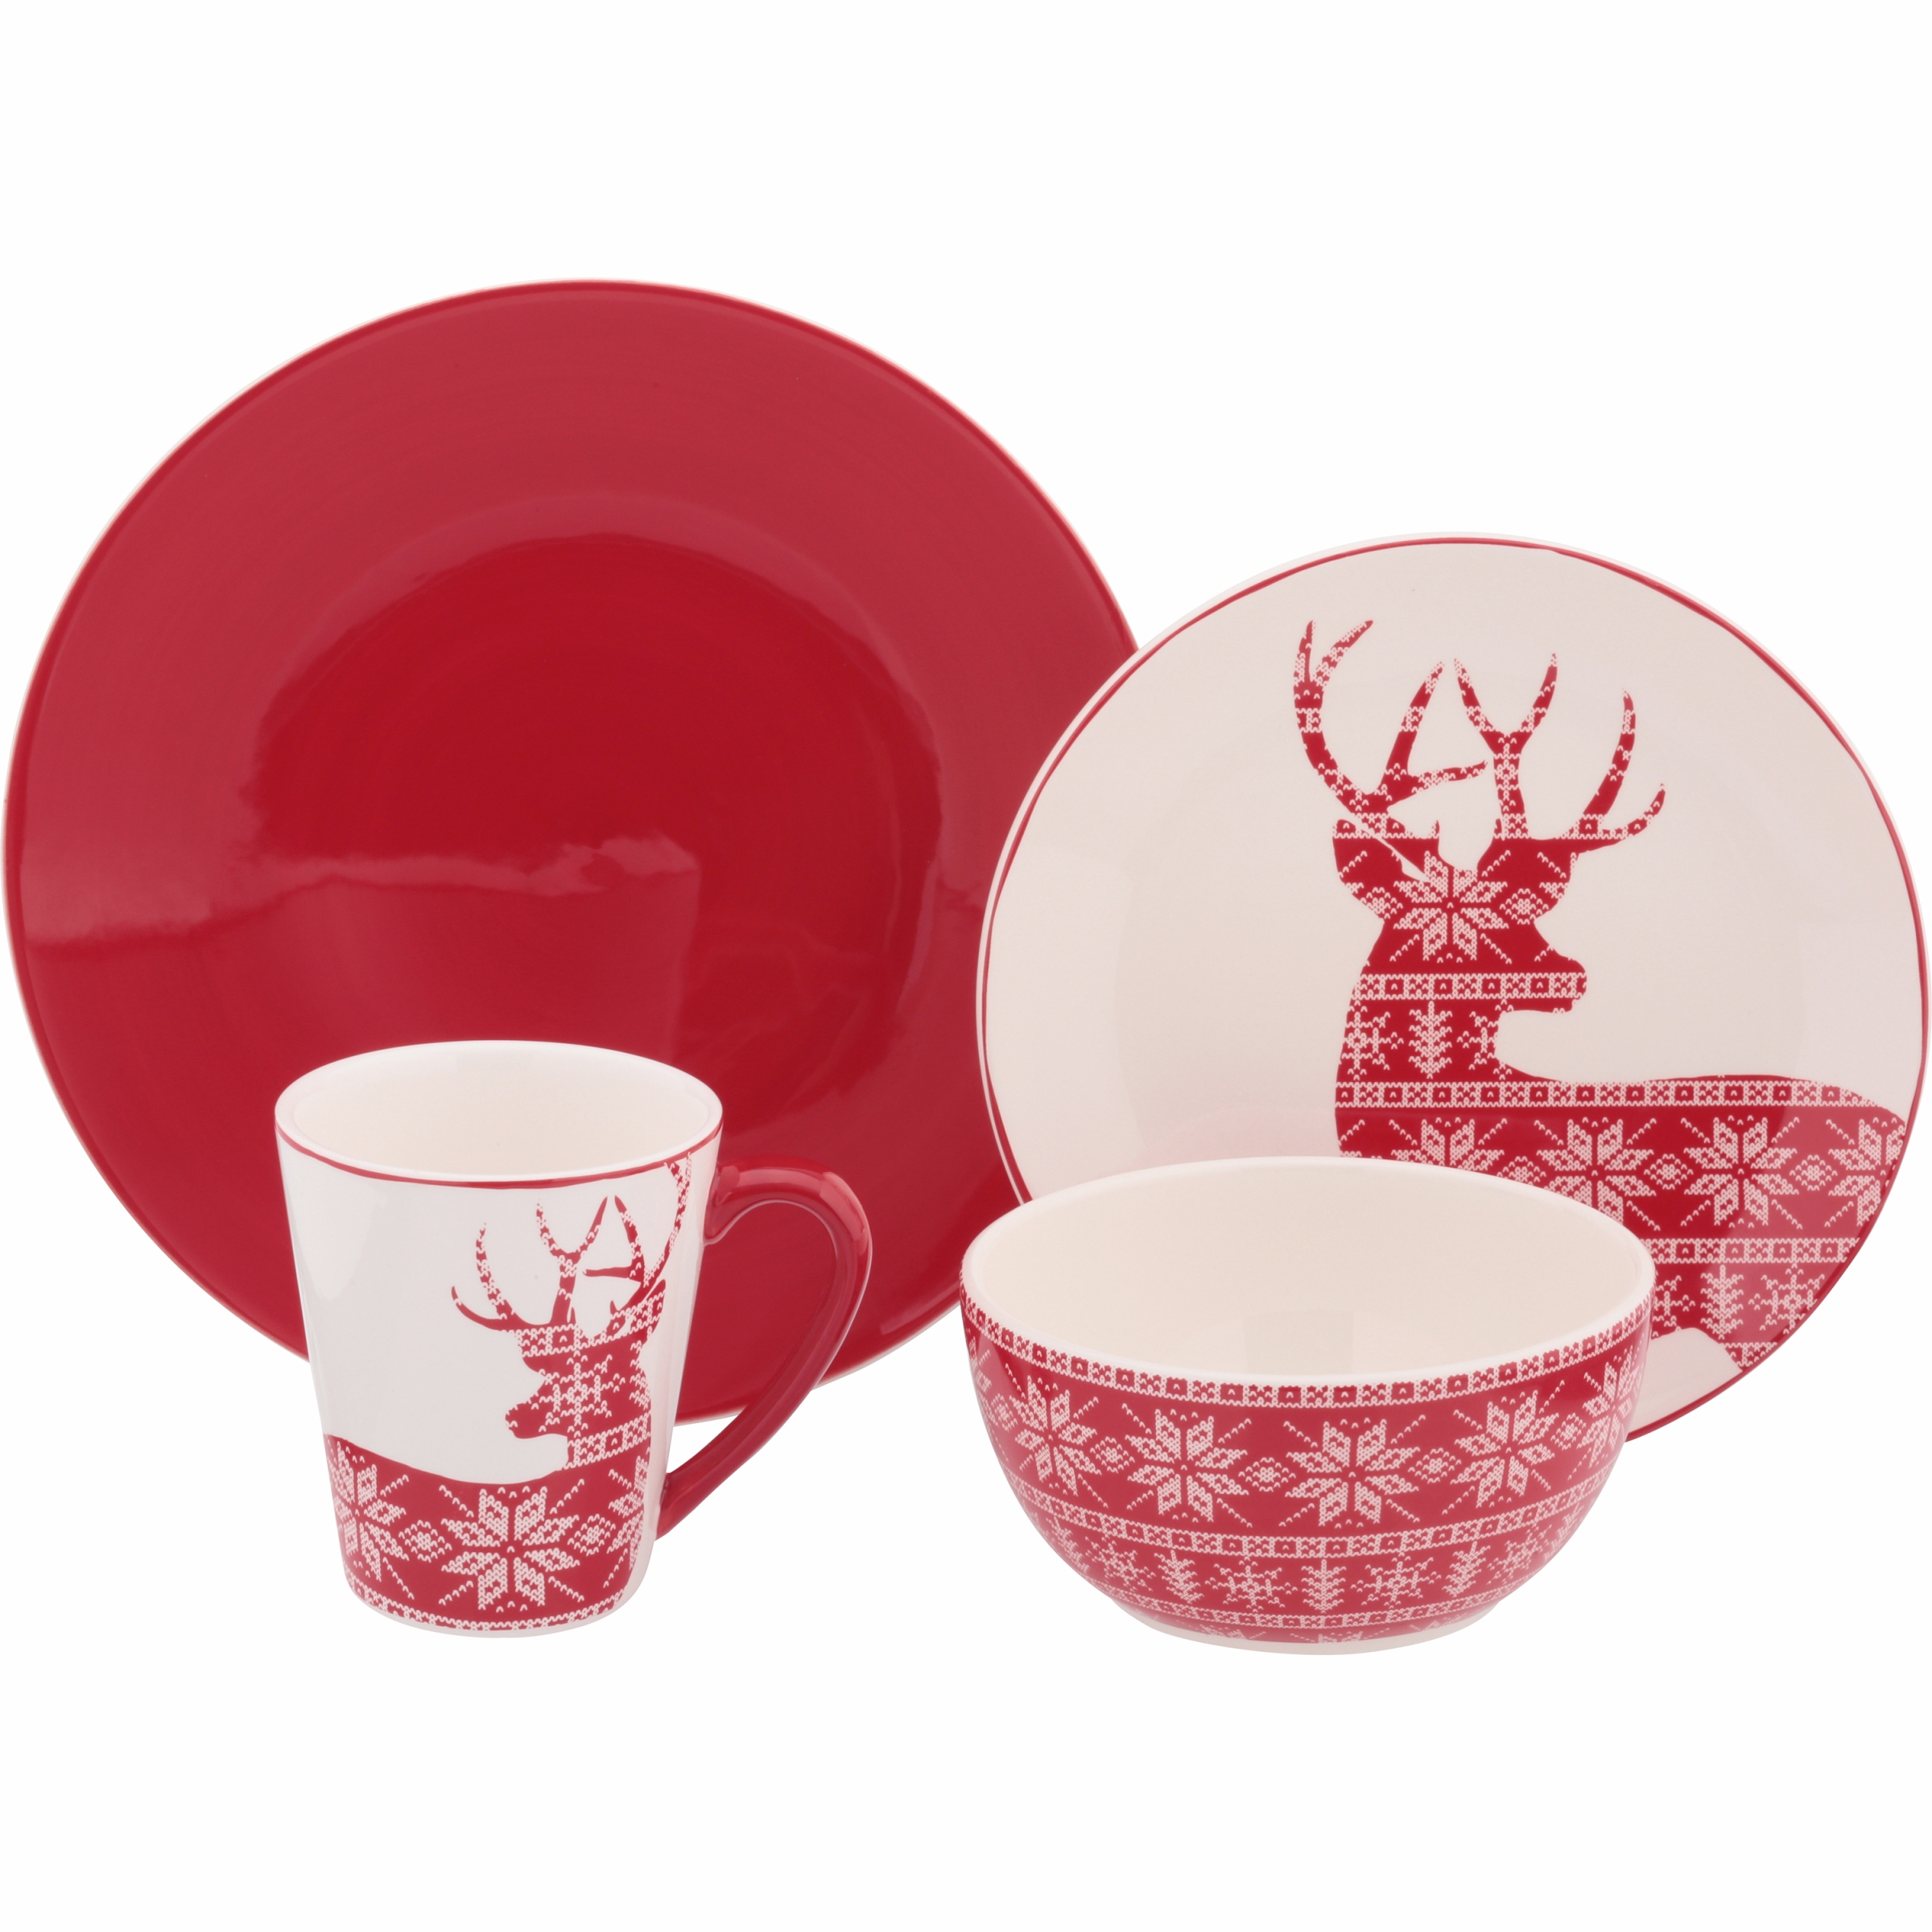 Mainstays™ Ironstone Deer Dinnerware Set Variety Pack 16 pc Box  sc 1 st  Walmart & Mainstays Dinnerware Sets - Walmart.com